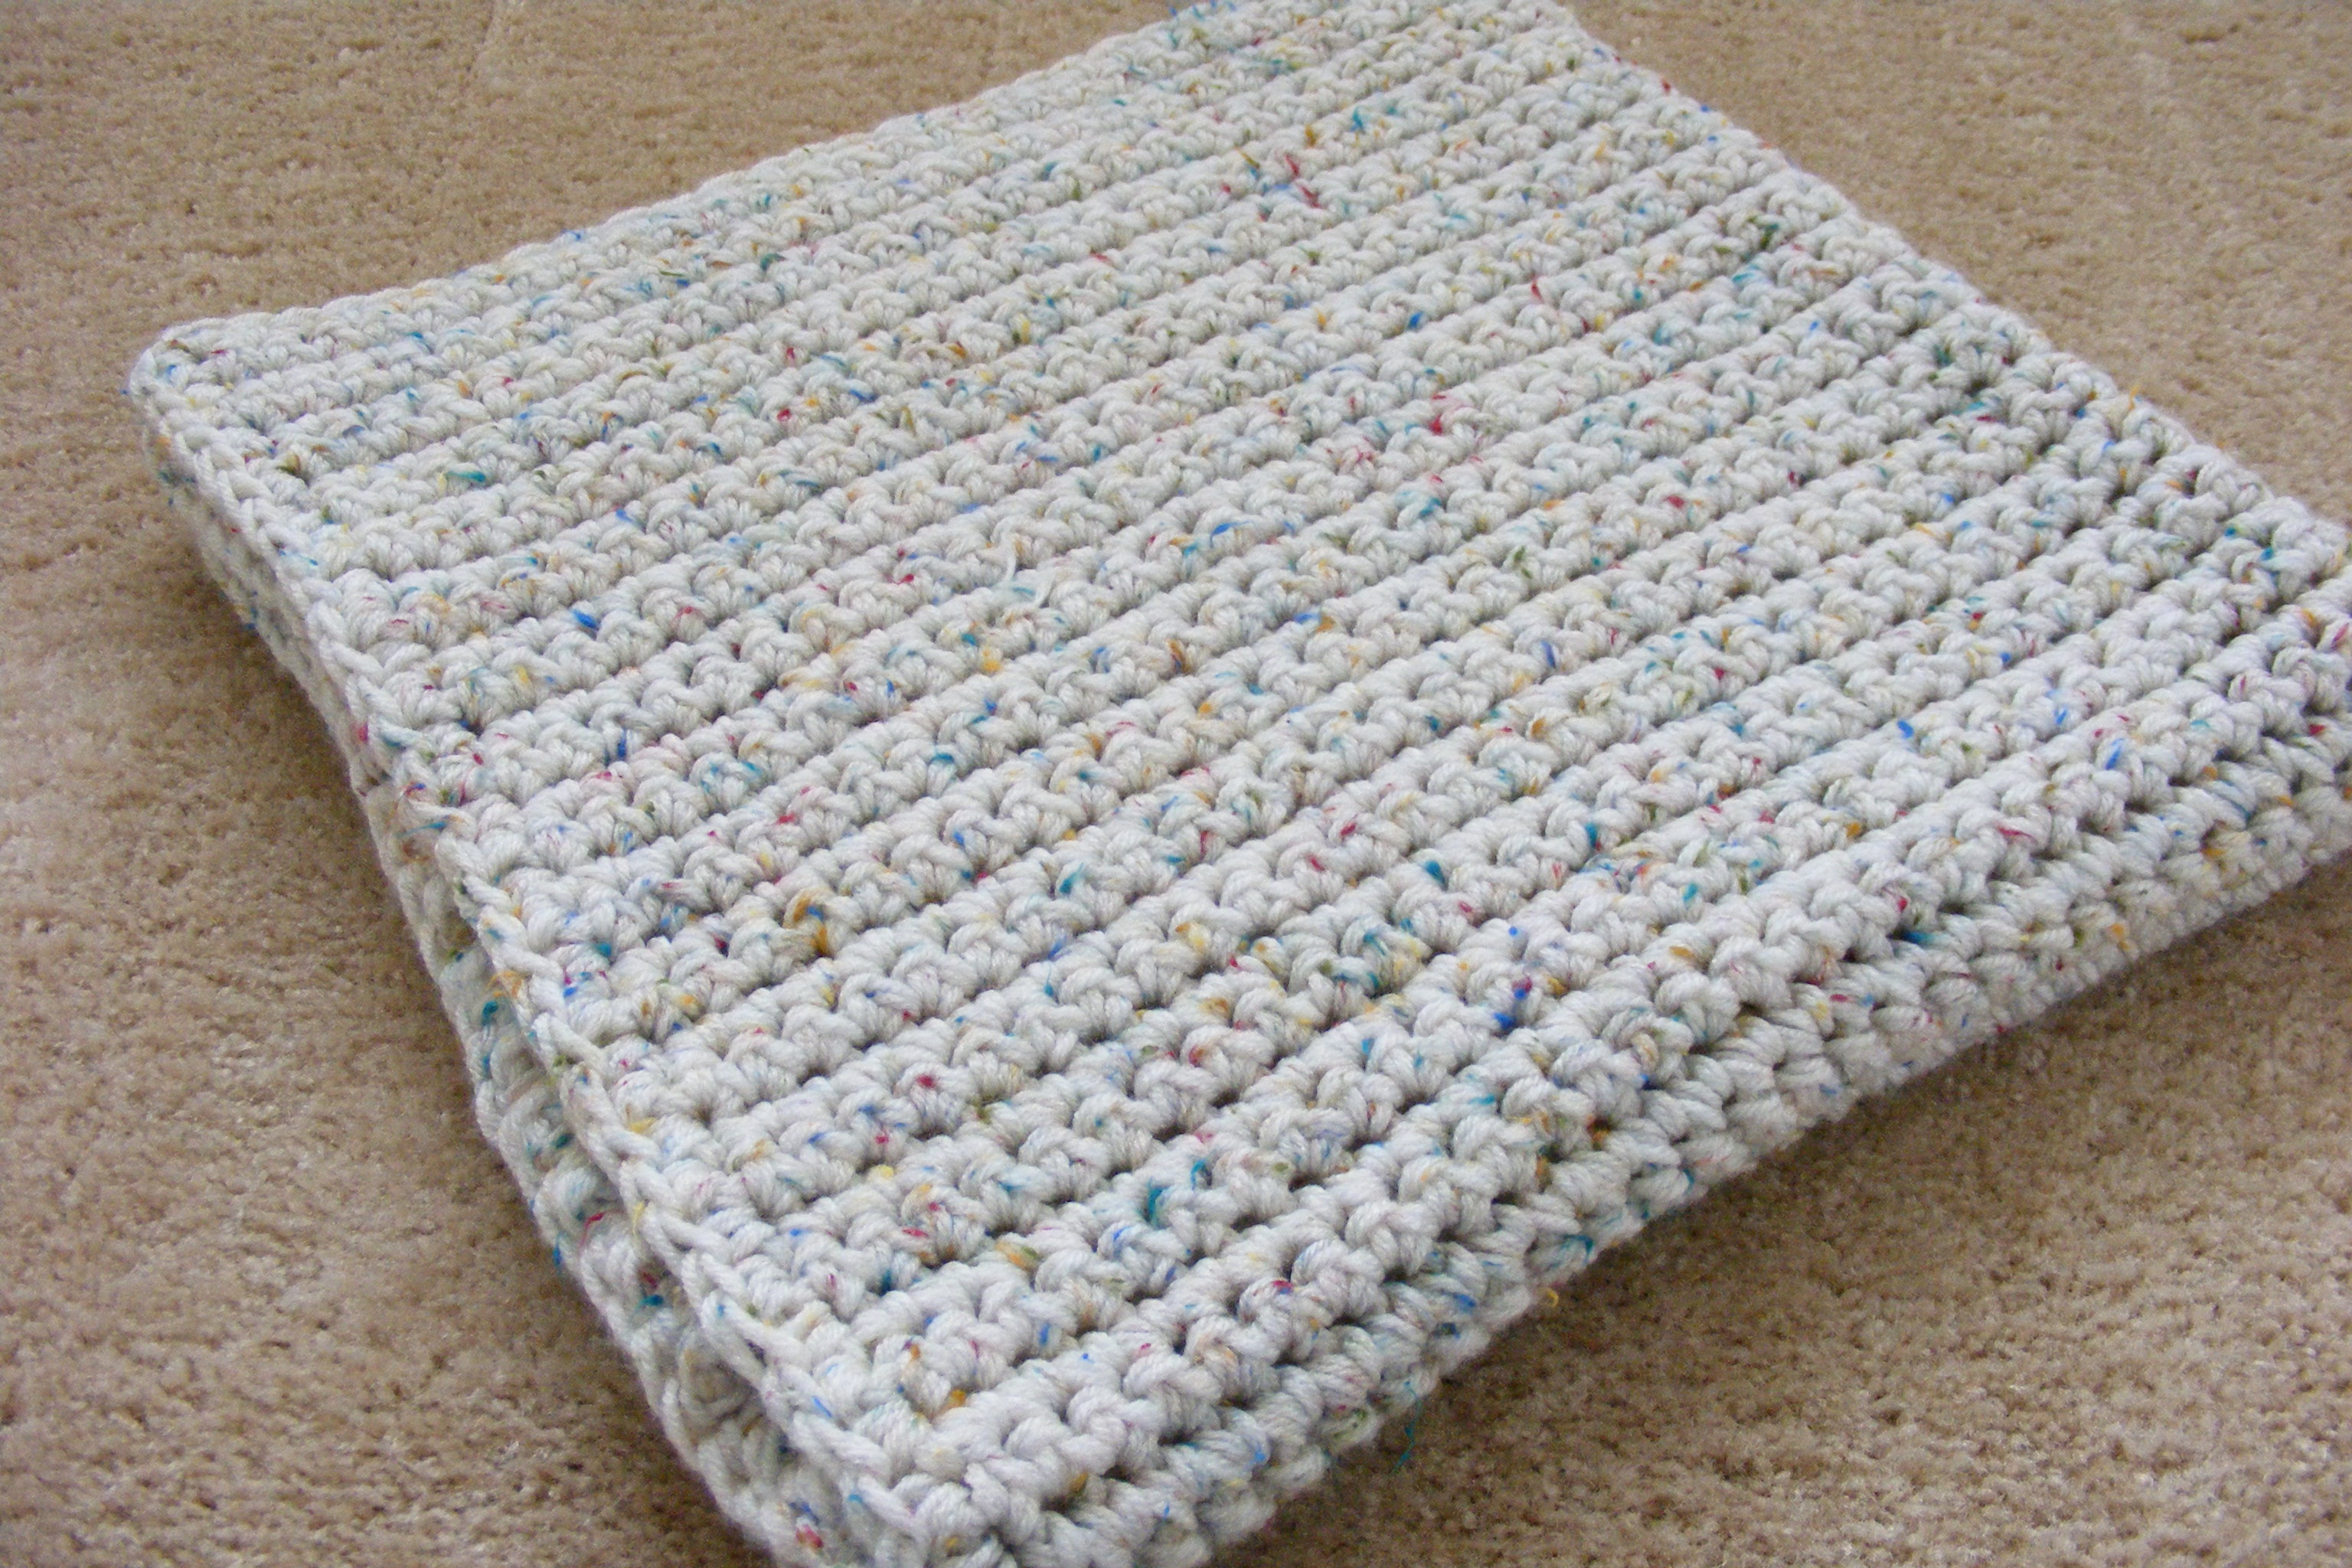 Simple Crochet : SIMPLE CROCHET BLANKETS Crochet For Beginners